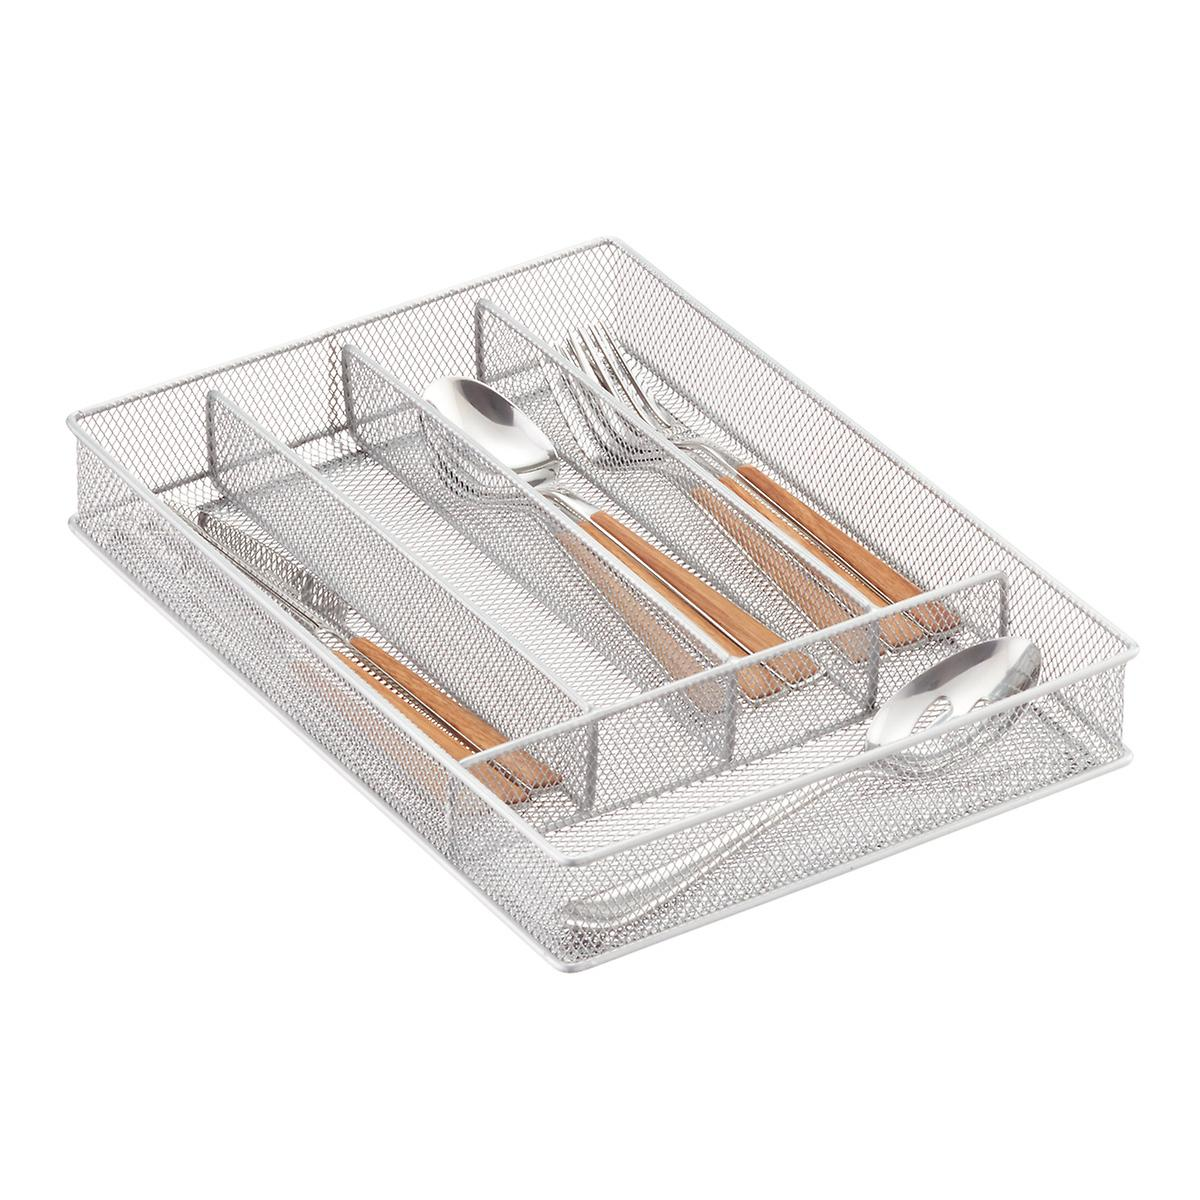 Silver Mesh Cutlery Trays The Container Store